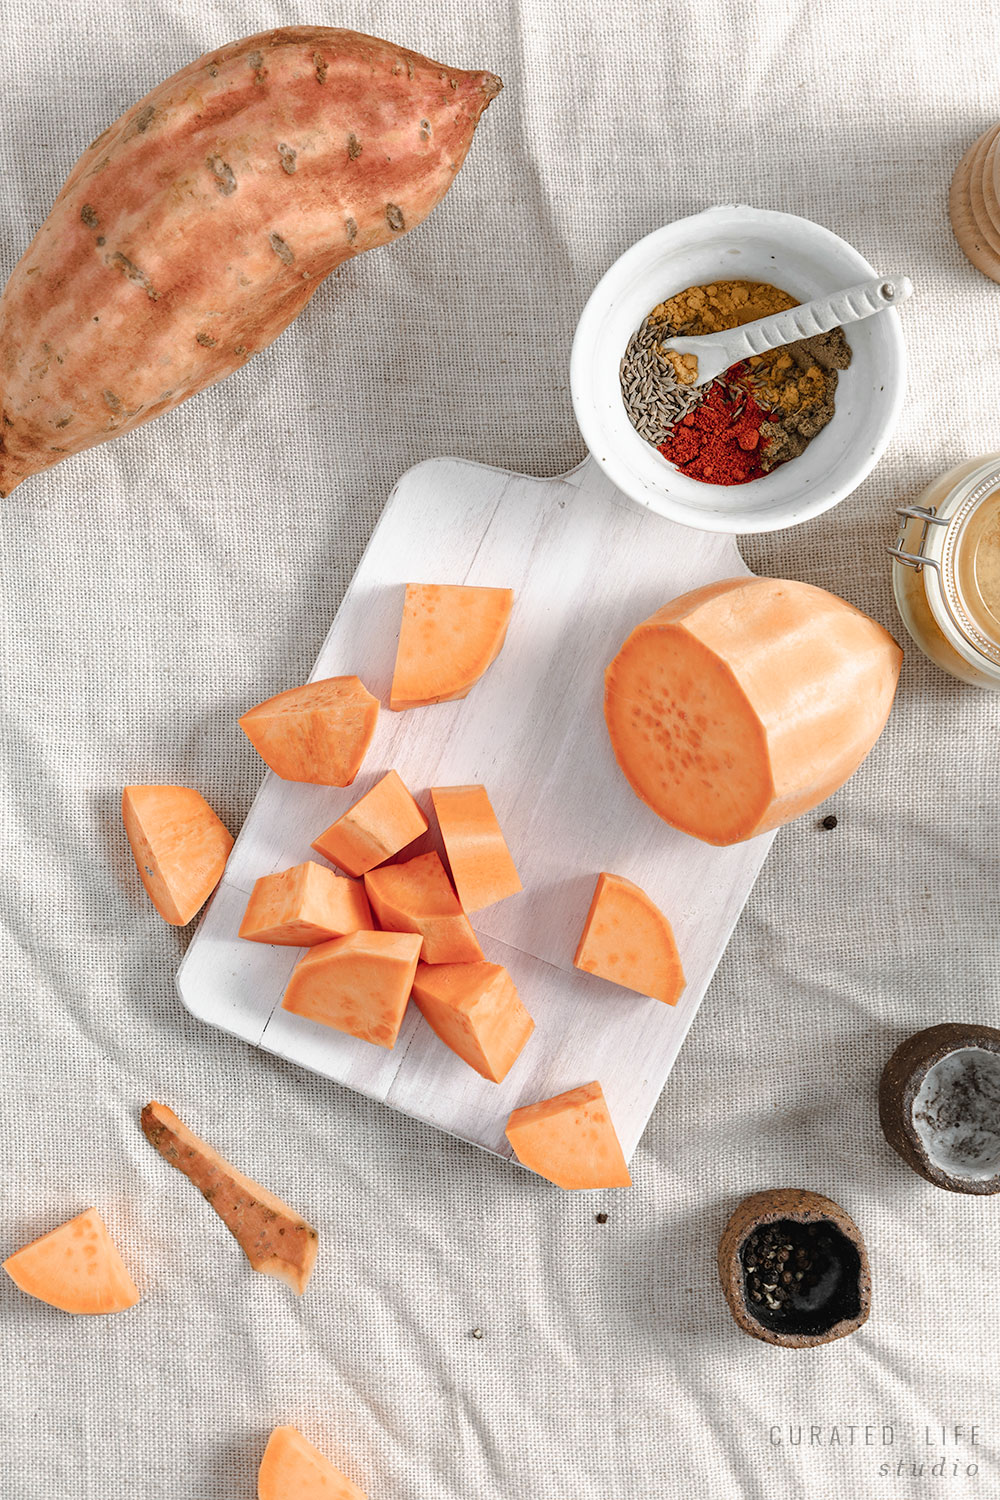 A bird's eye view of the chopped sweet potato. Herbs and a spoon share the white chopping board, suggestive that it will soon be sprinkled on the dish.